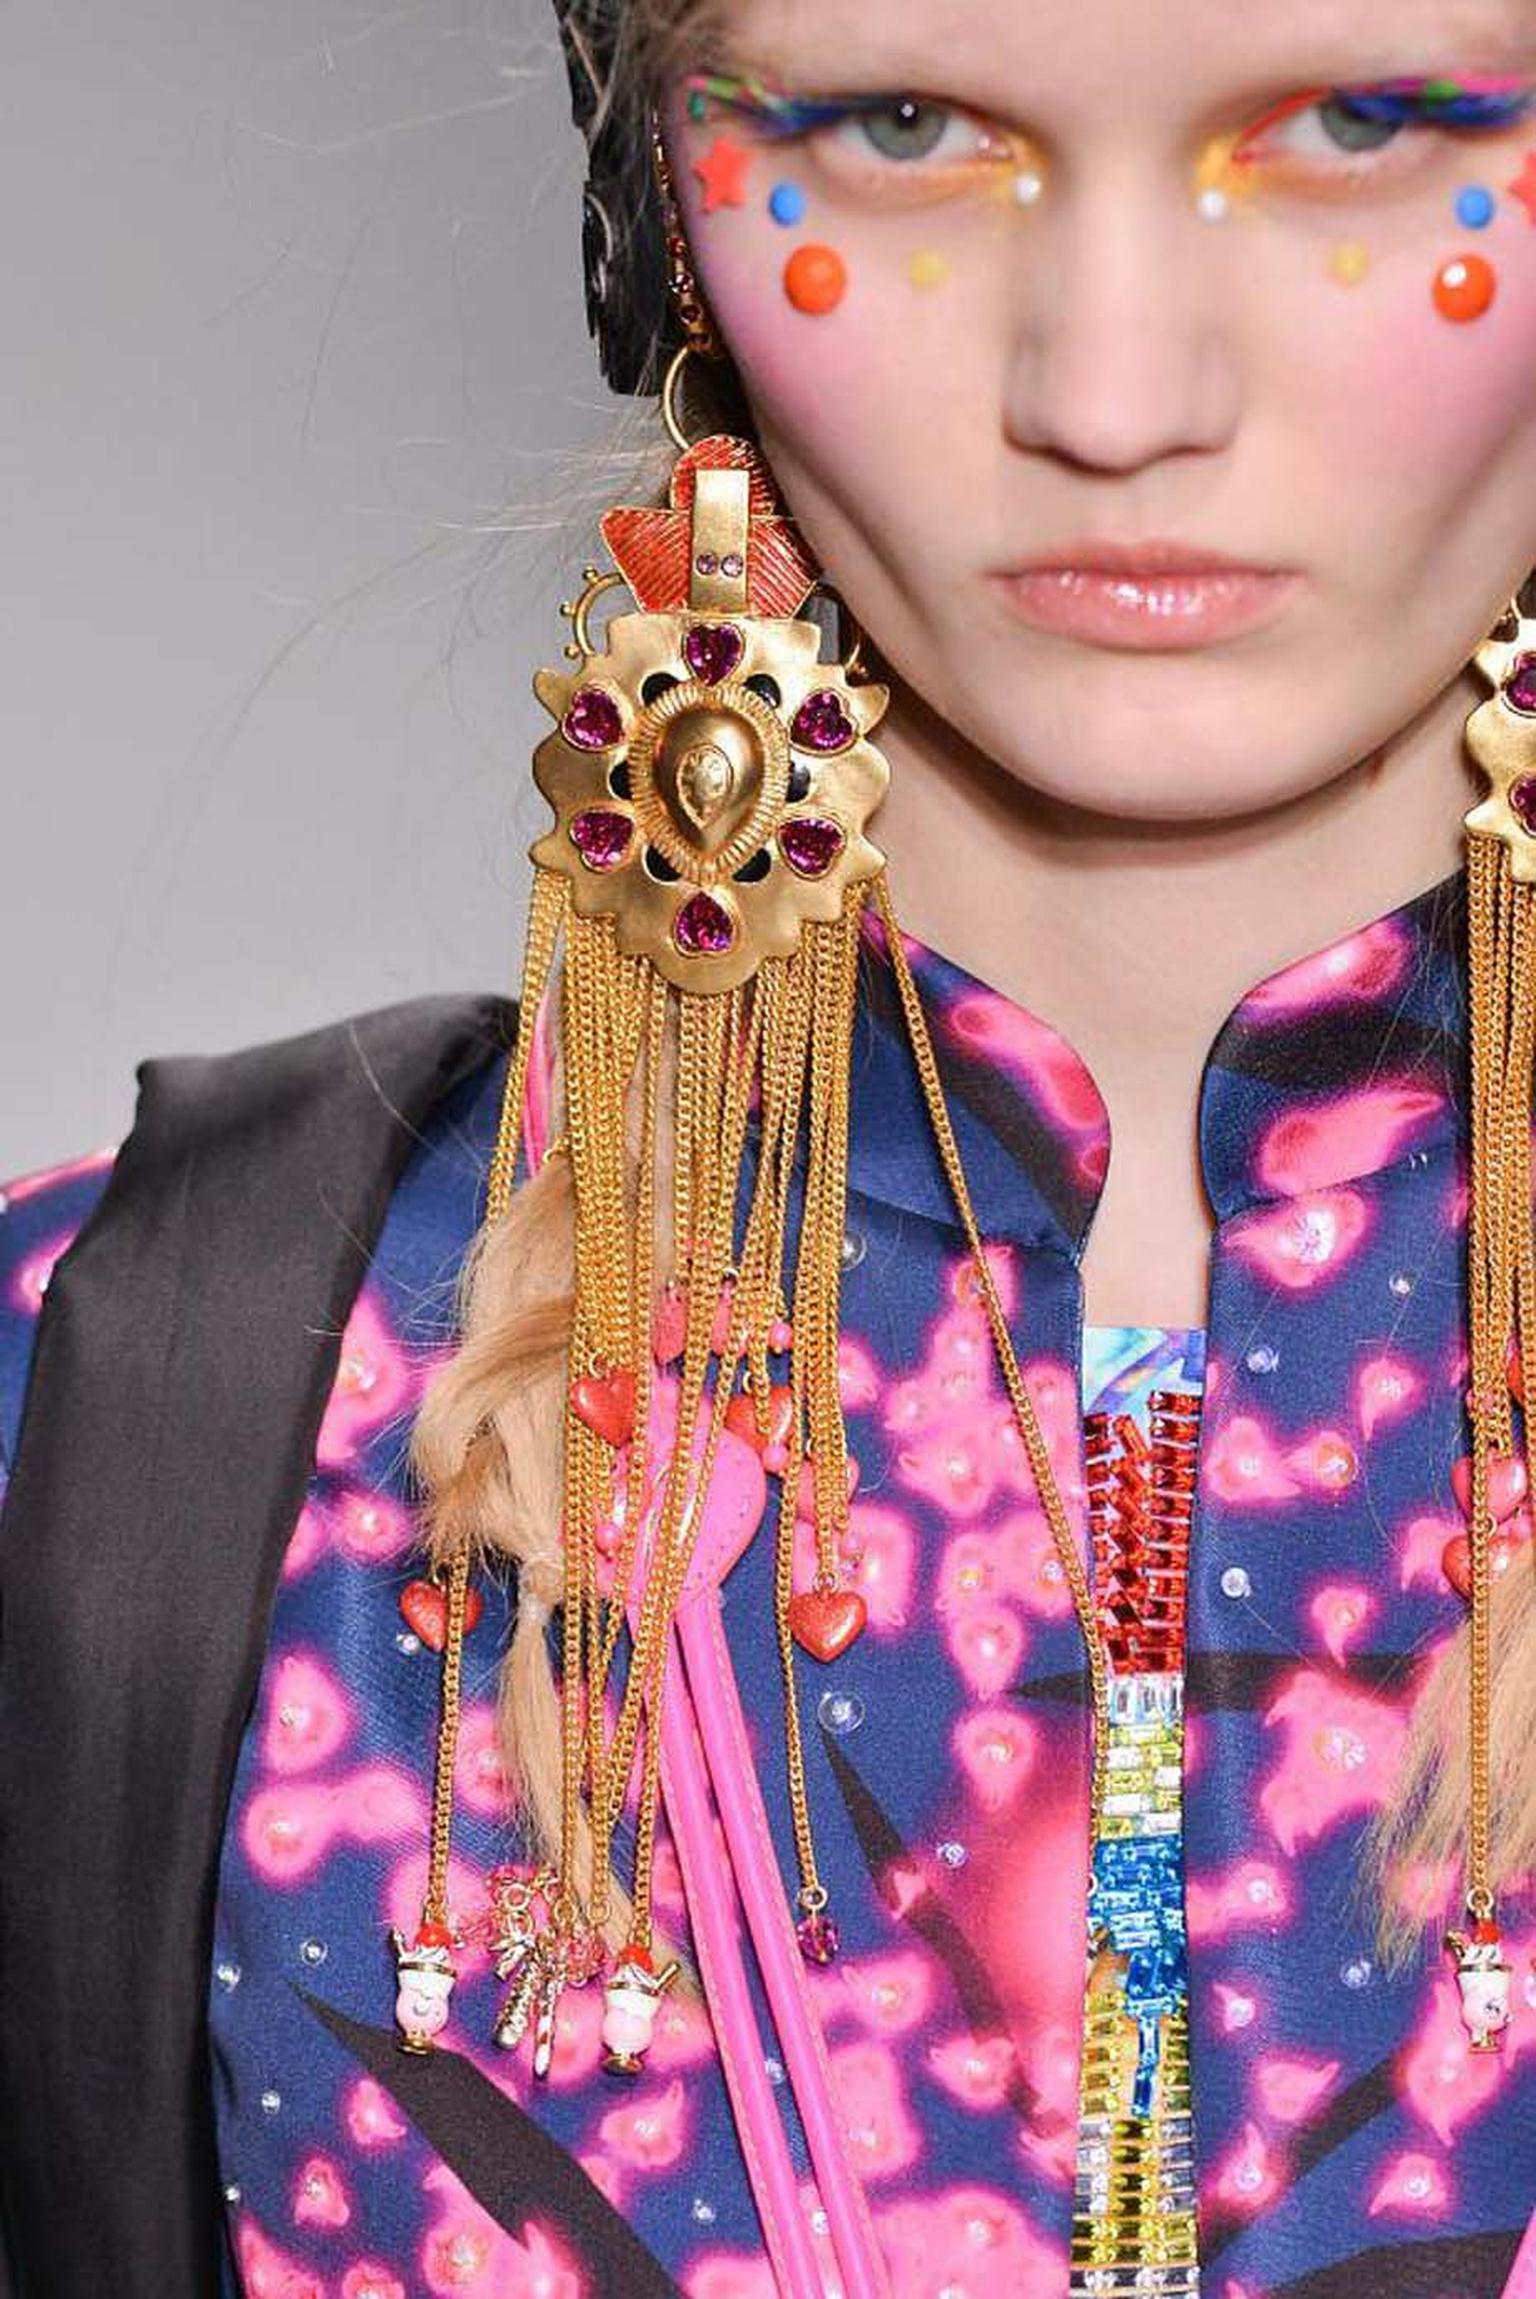 During Paris Fashion Week 2014, a model showcases earrings from the latest Amrapali and Manish Arora AW 14-15 collection.